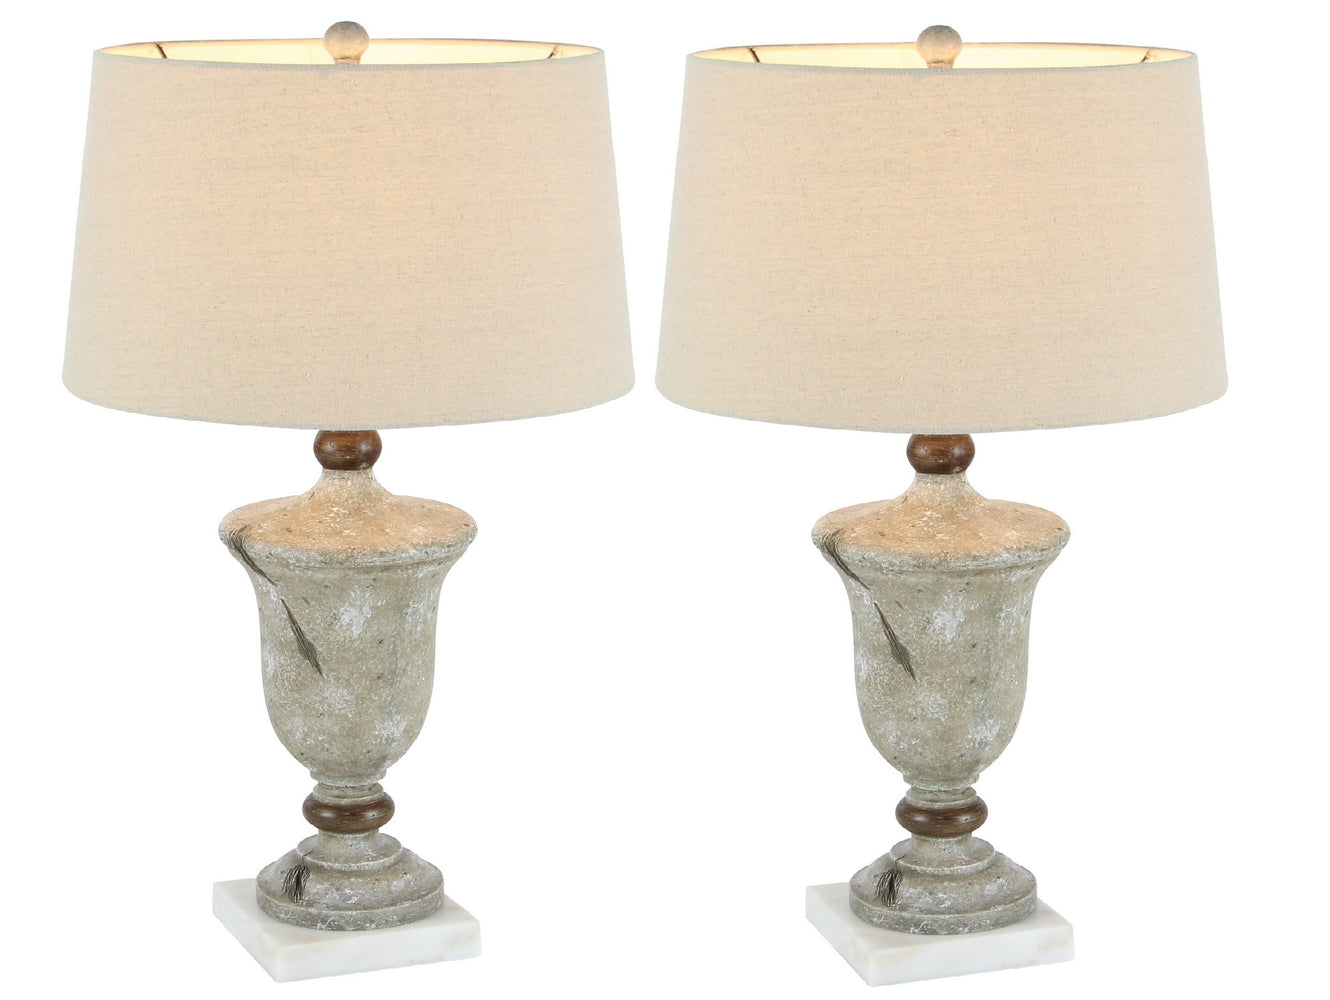 Urban Designs Rustic Polystone 30-Inch Table Lamp (Set of 2)